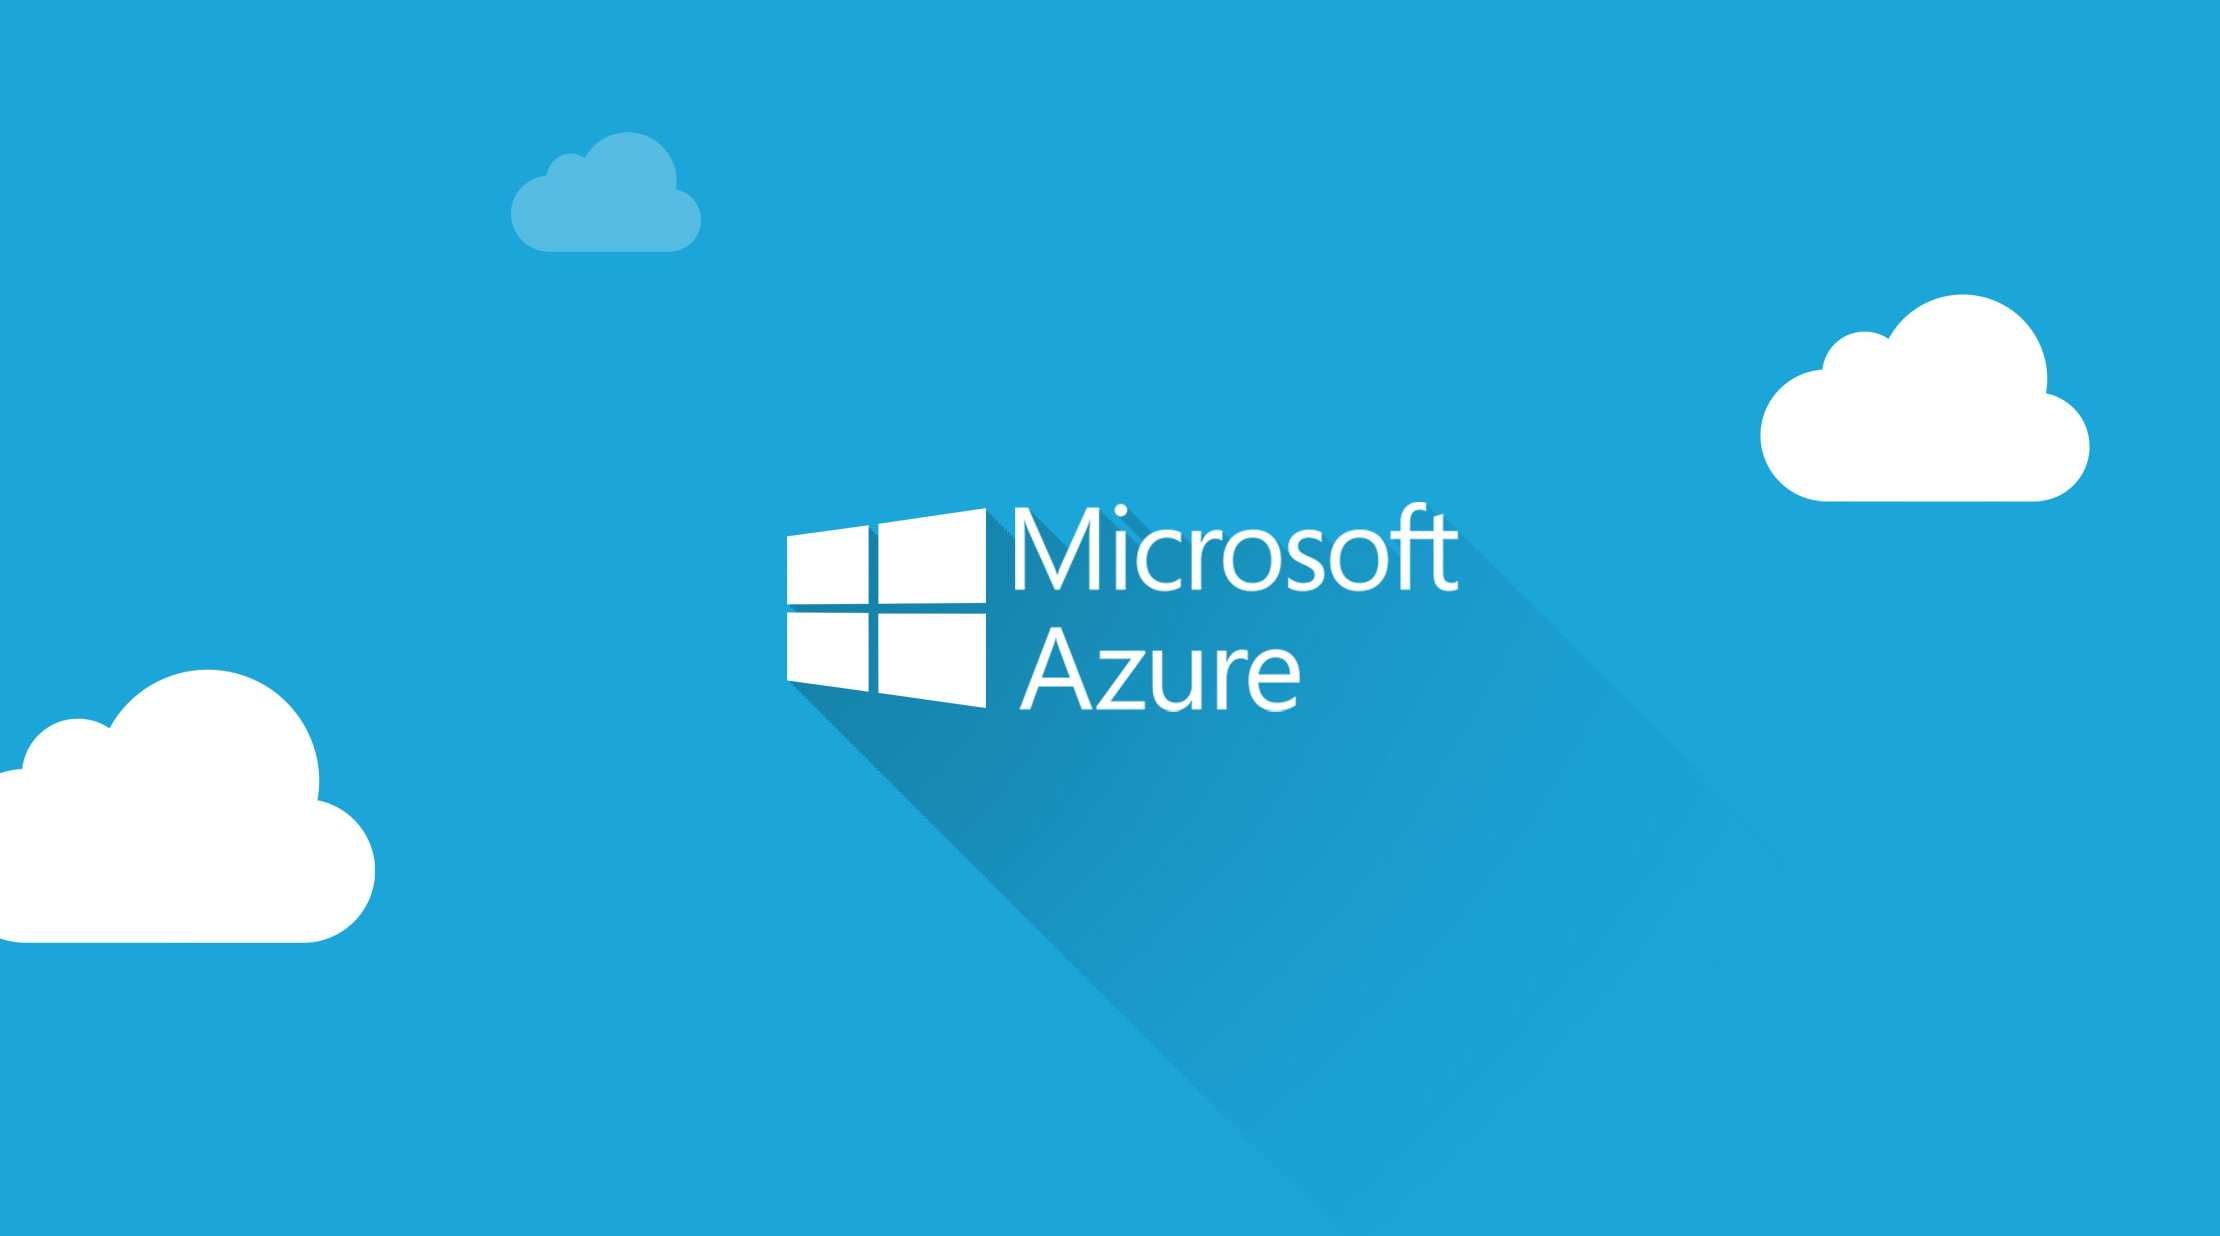 What's New in Windows Azure Tour Heading to WI